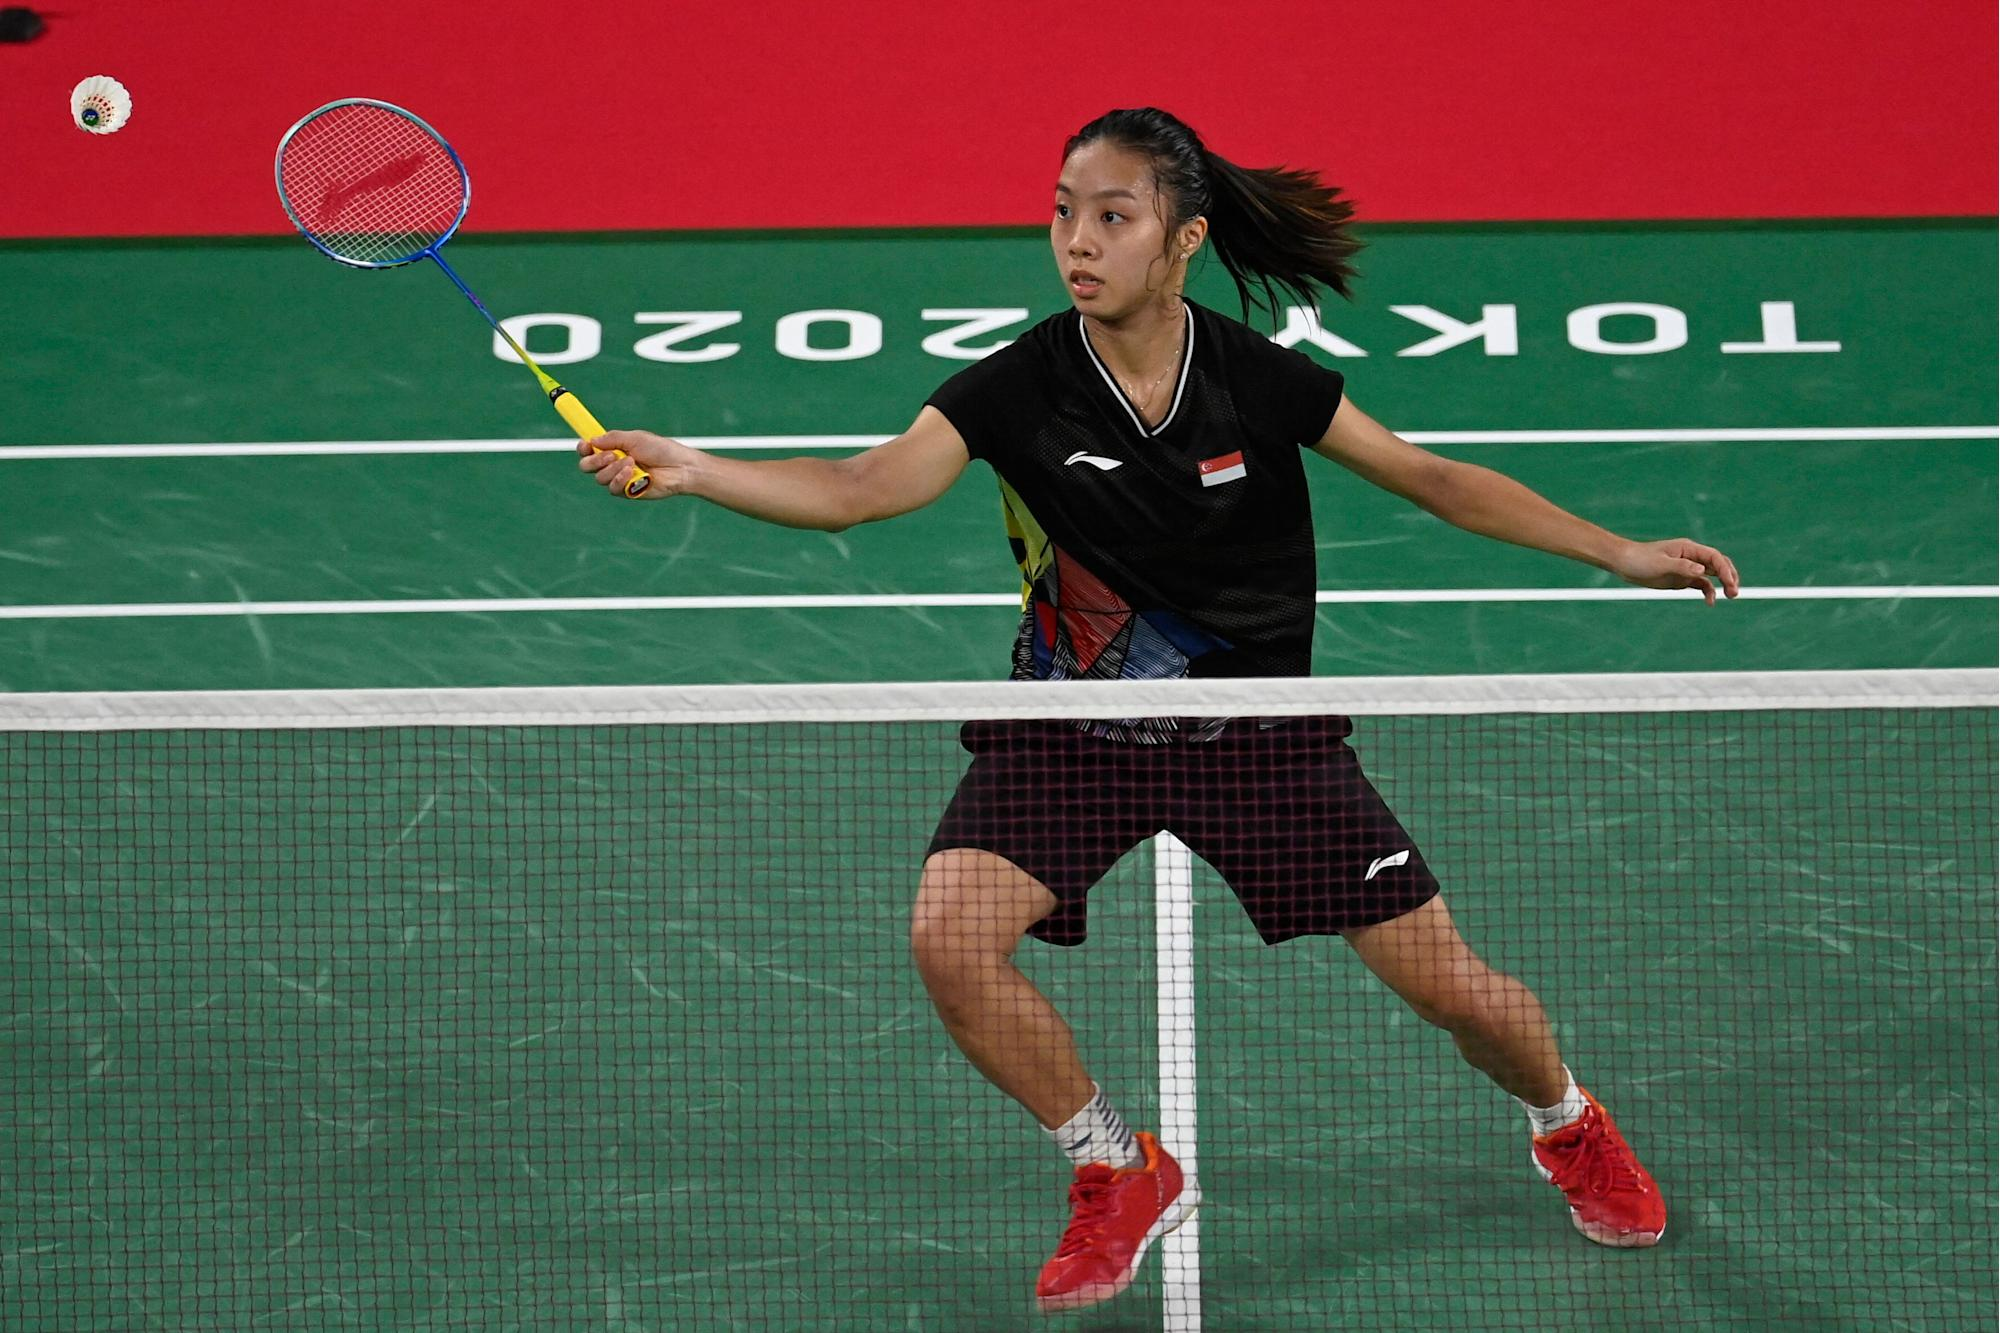 Tokyo Olympics: Yeo Jia Min ousted by superior Korean opponent